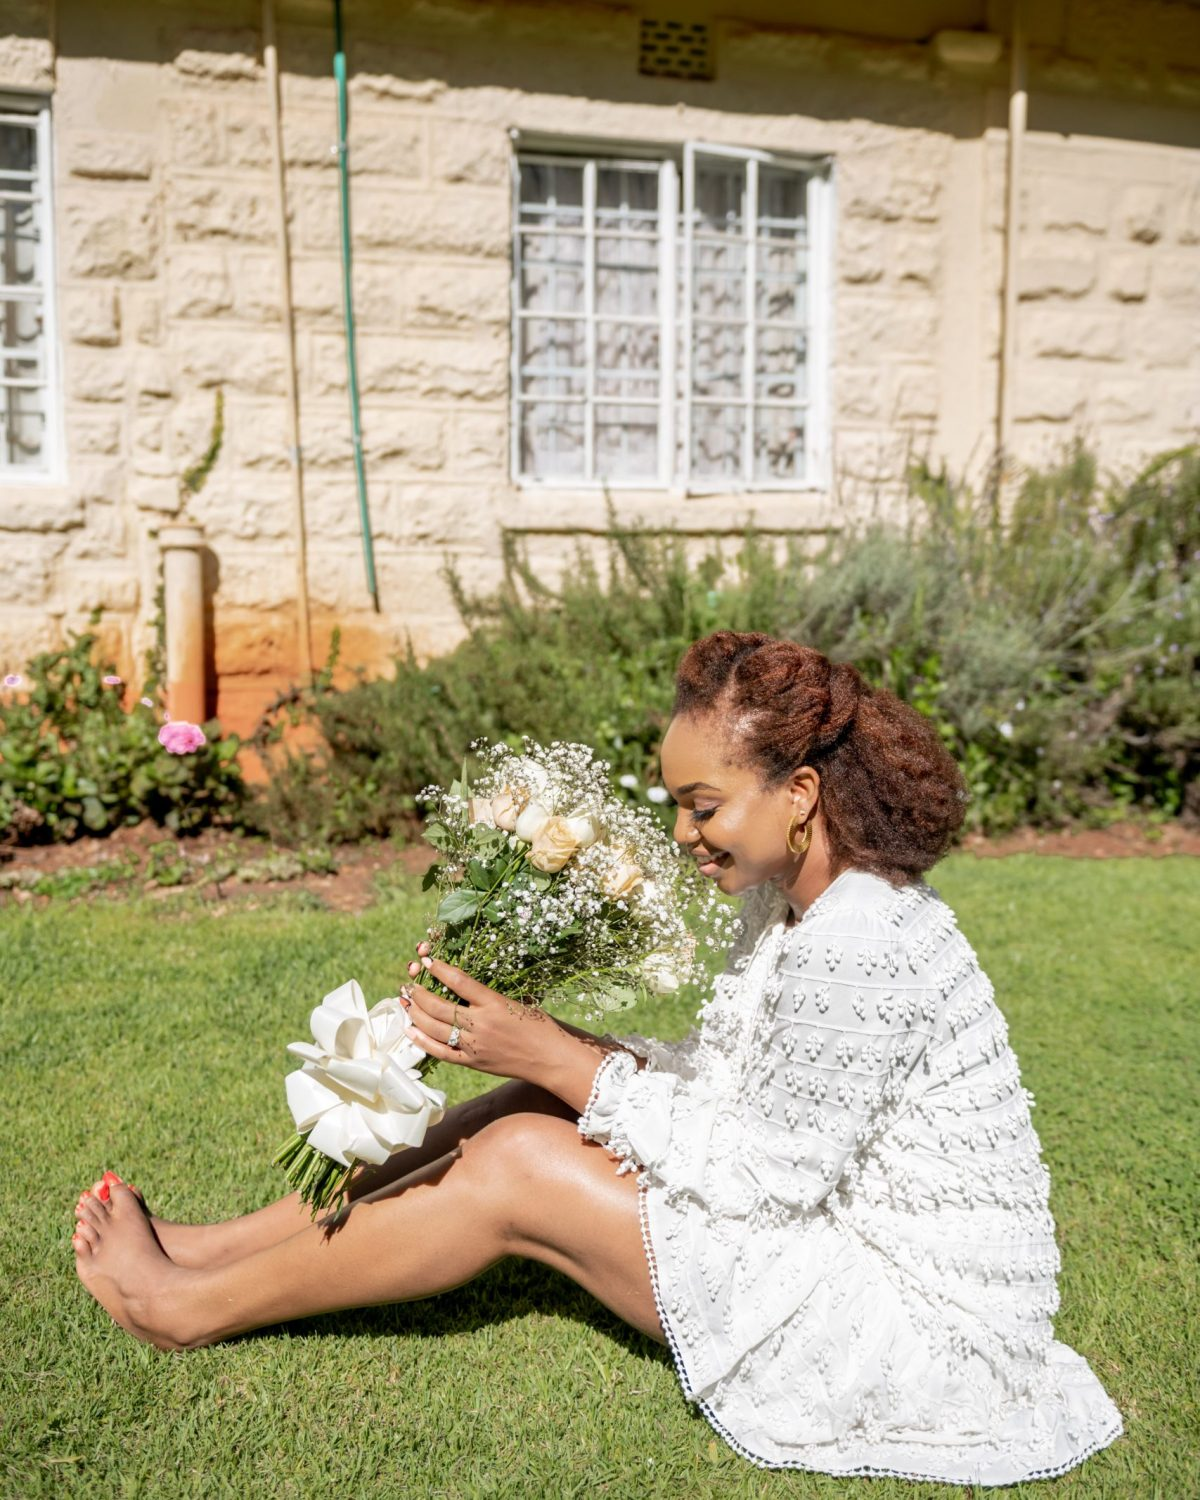 Ijeoma Kola sitting on grass in a white dress in front of a house - Marriage or Mortgage